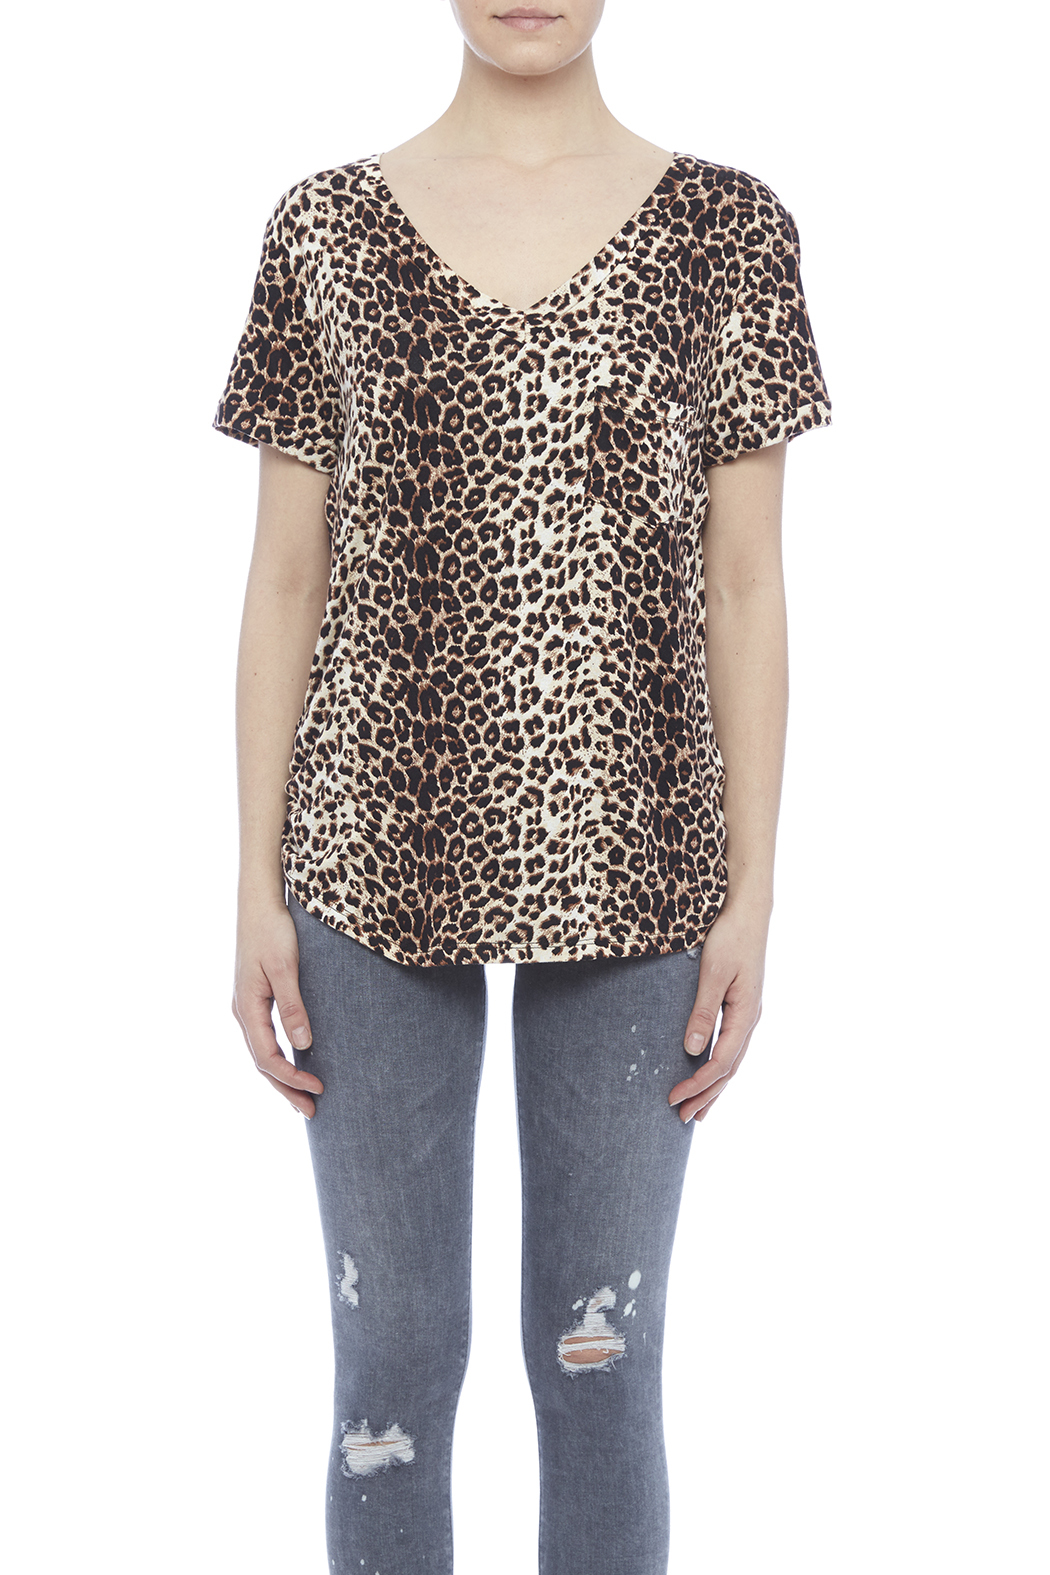 LIBIAN Leopard Print Top - Side Cropped Image